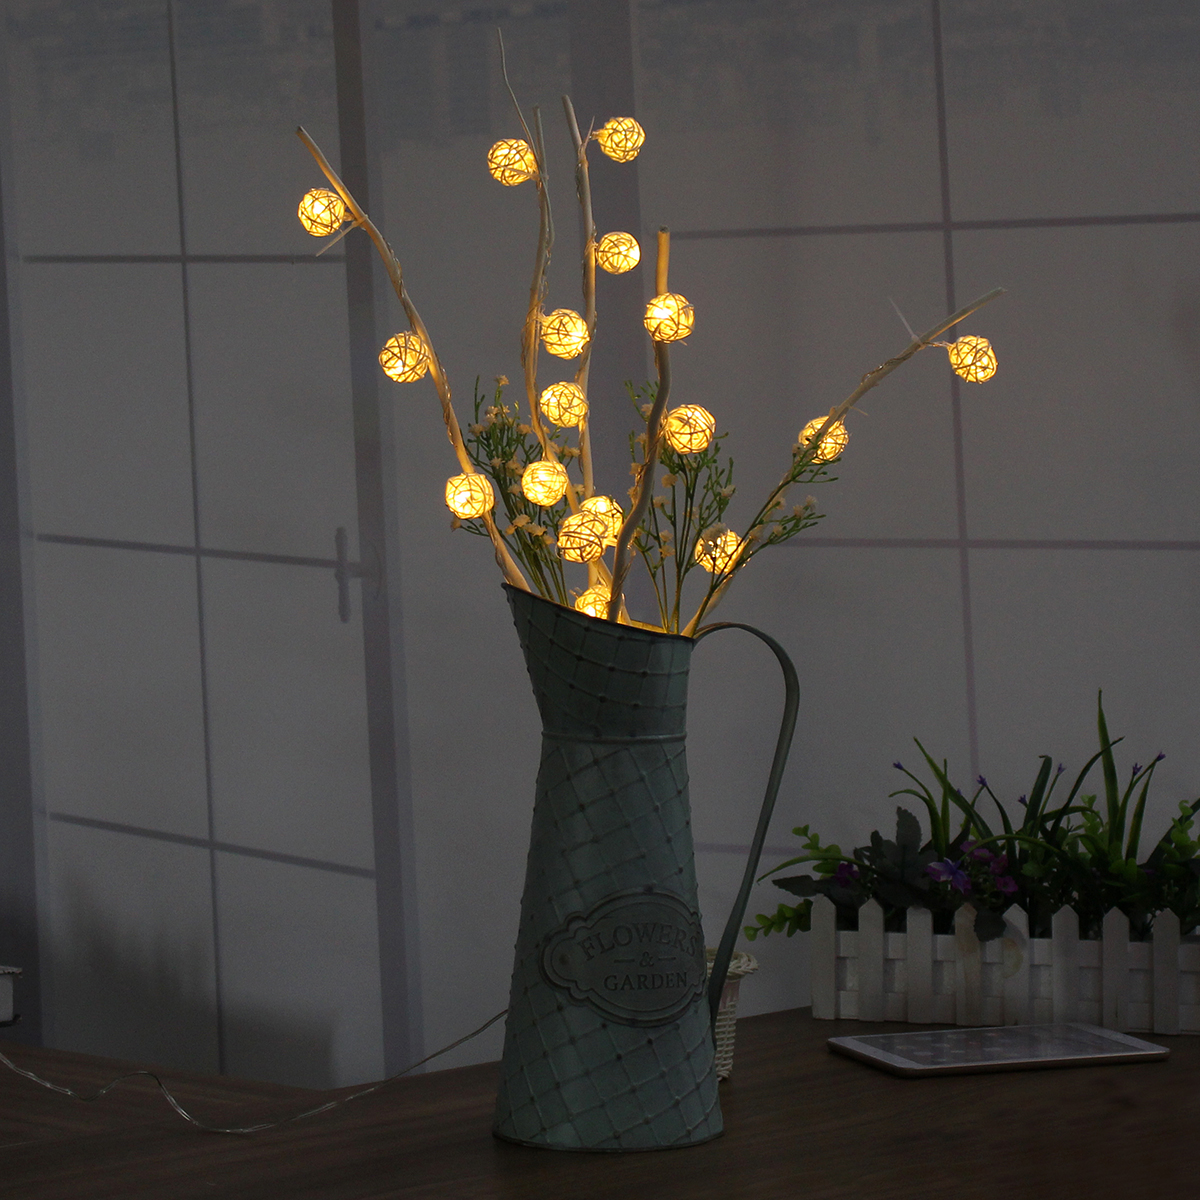 5M White Warm White 25LED Twig Tree Branches Table Holiday String Light Decoration AC110-220V